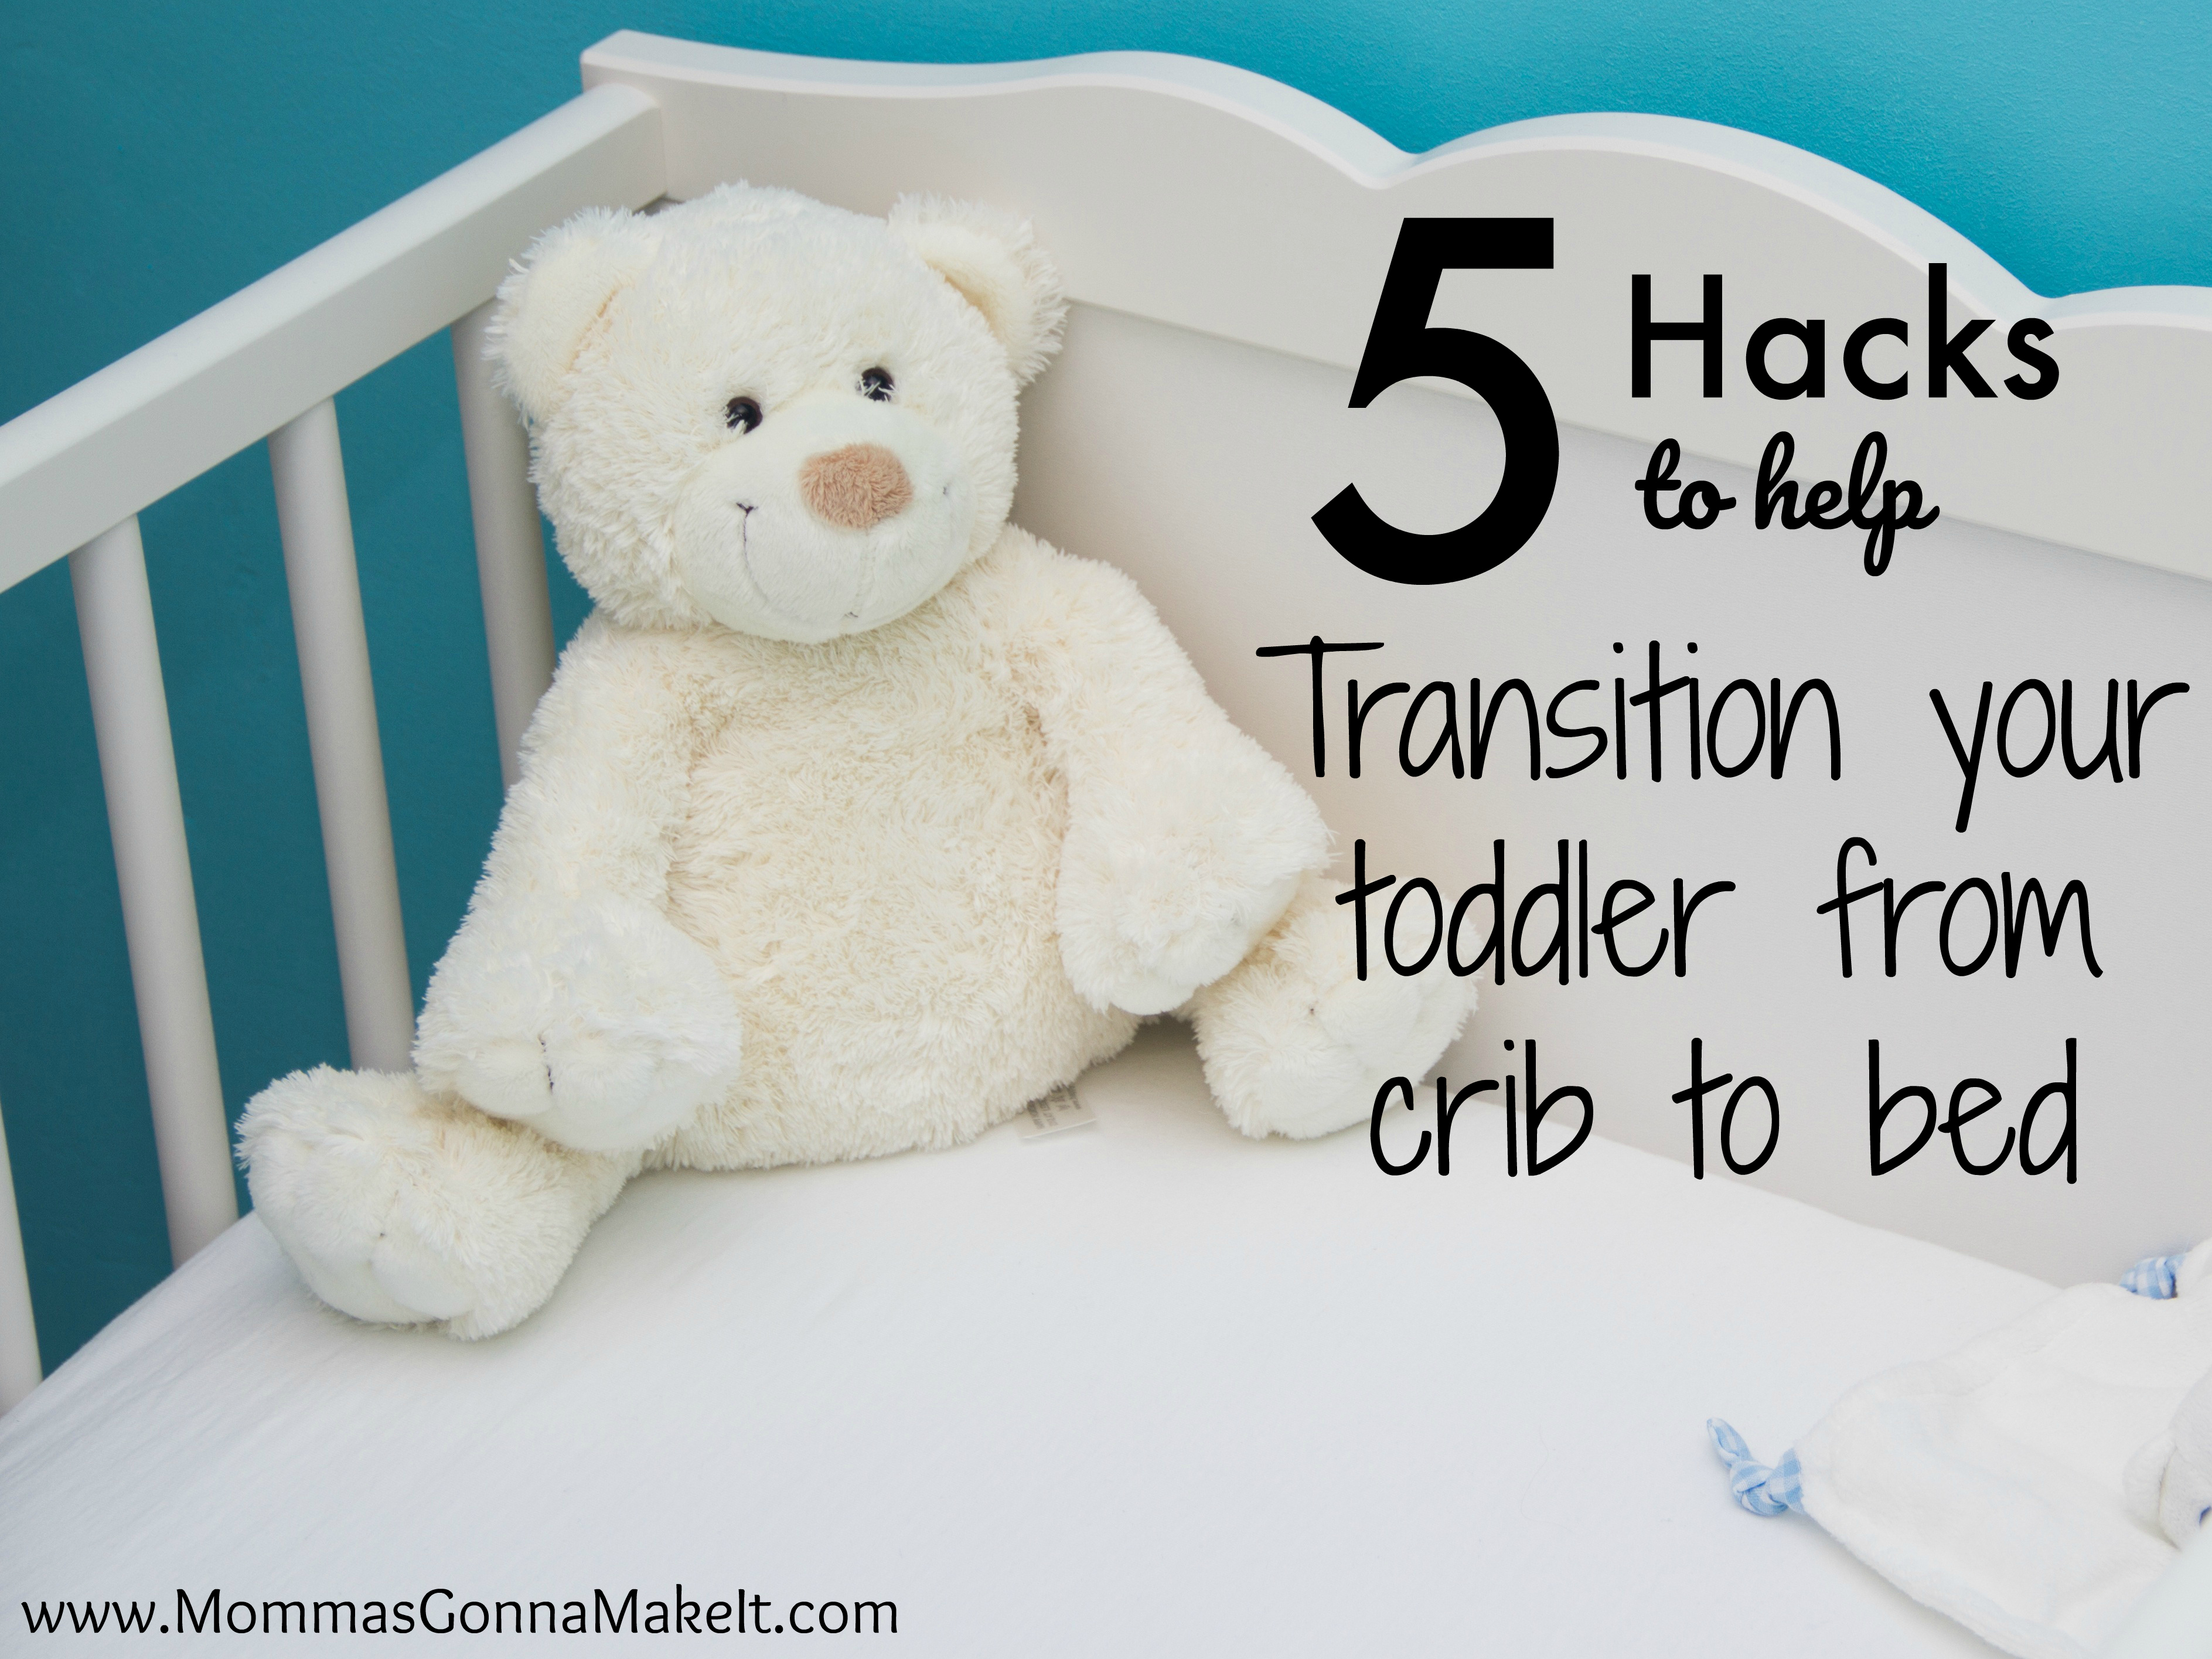 5 hacks to transition your toddler from crib to bed, 5 tips to transition toddler from crib to bed